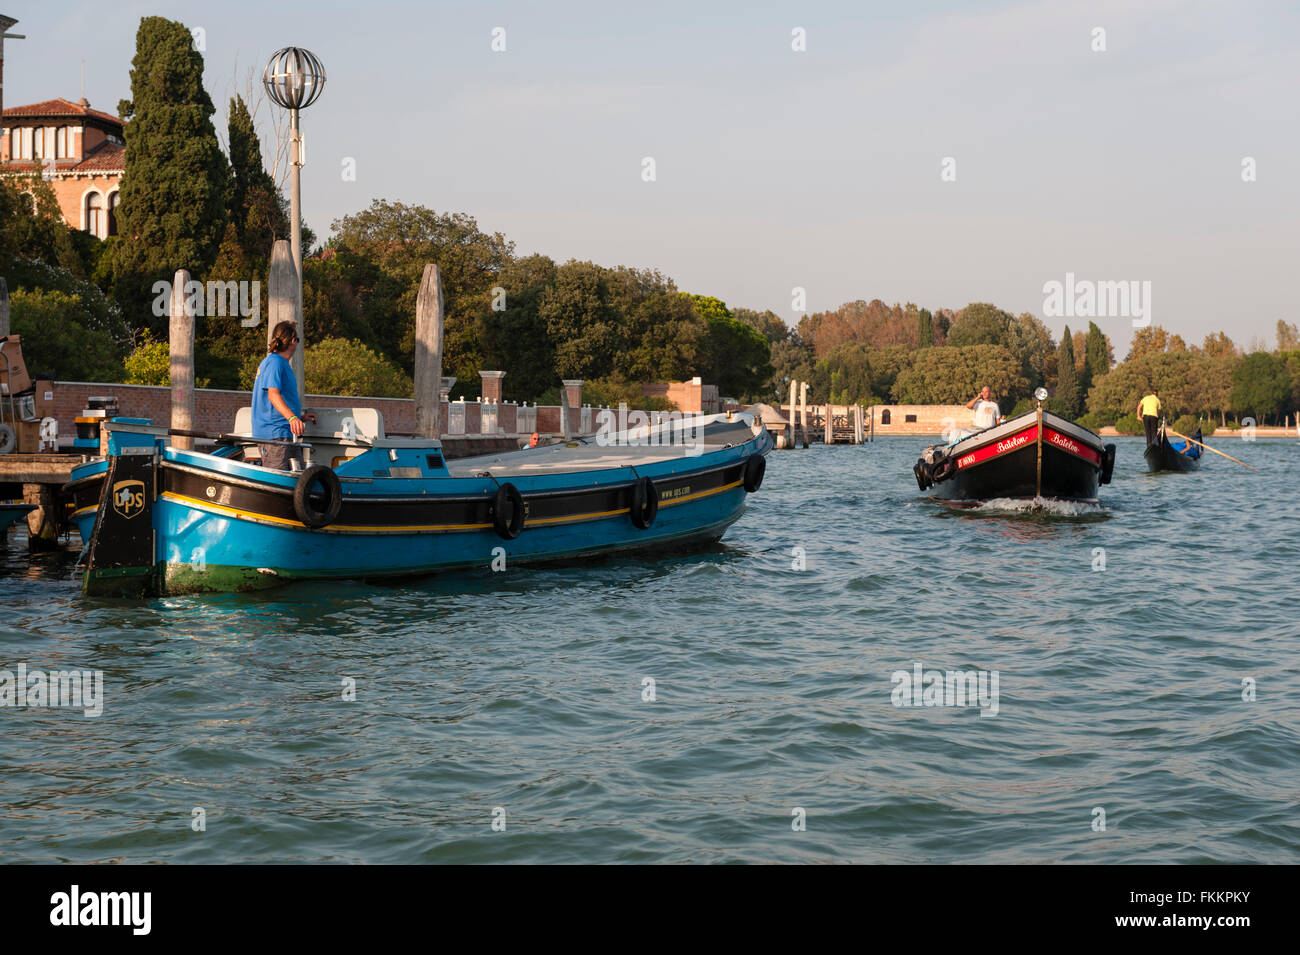 Venice, Italy. A UPS (United Parcel Service, Inc.) delivery barge on a canal off the island of Giudecca - Stock Image